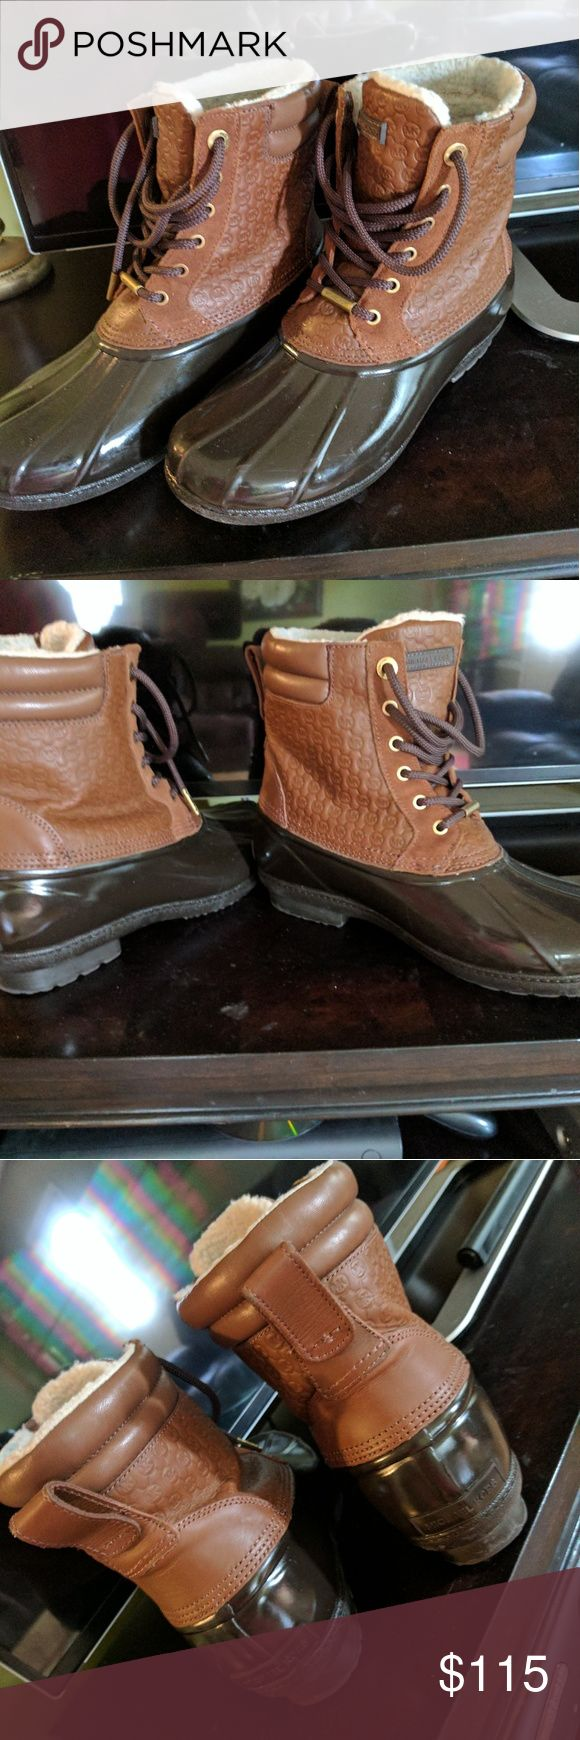 MK Duck Boots! Worn 2 or 3 times!! Real MK boots! Paid close to $200 Michael Kors Shoes Winter & Rain Boots